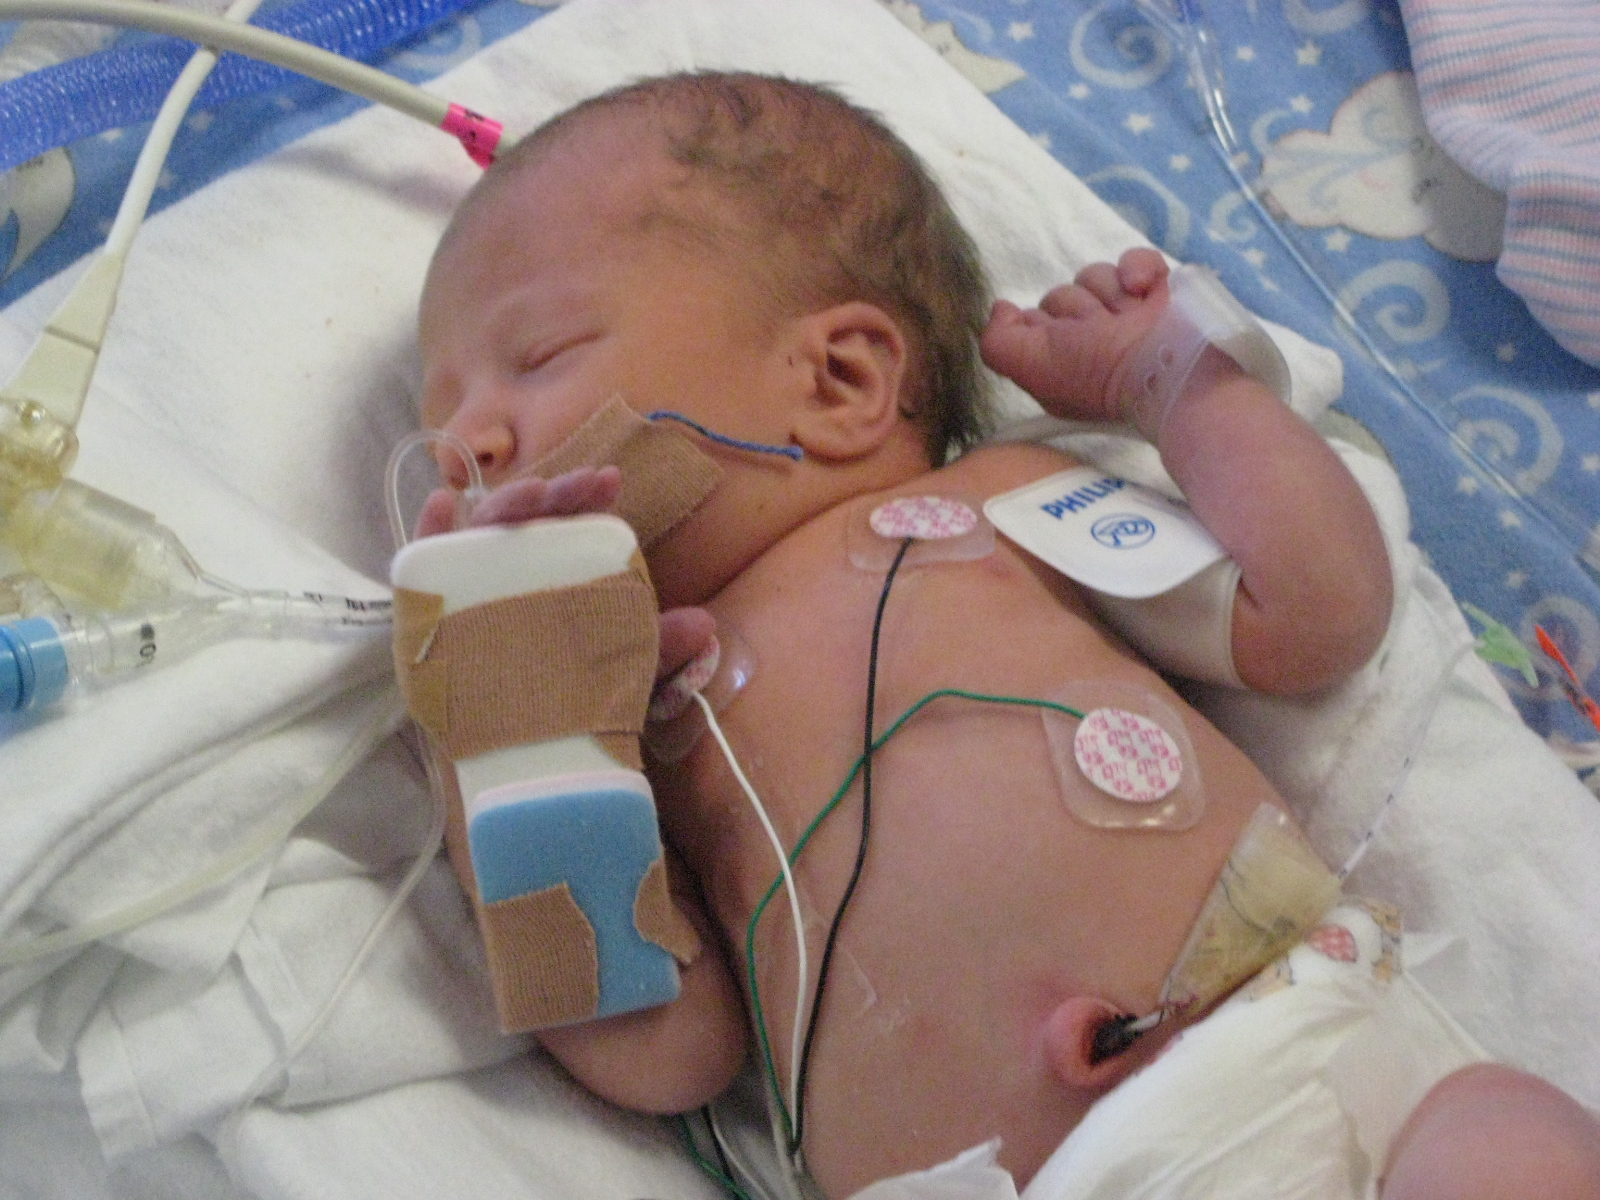 living in well being Premature Babies